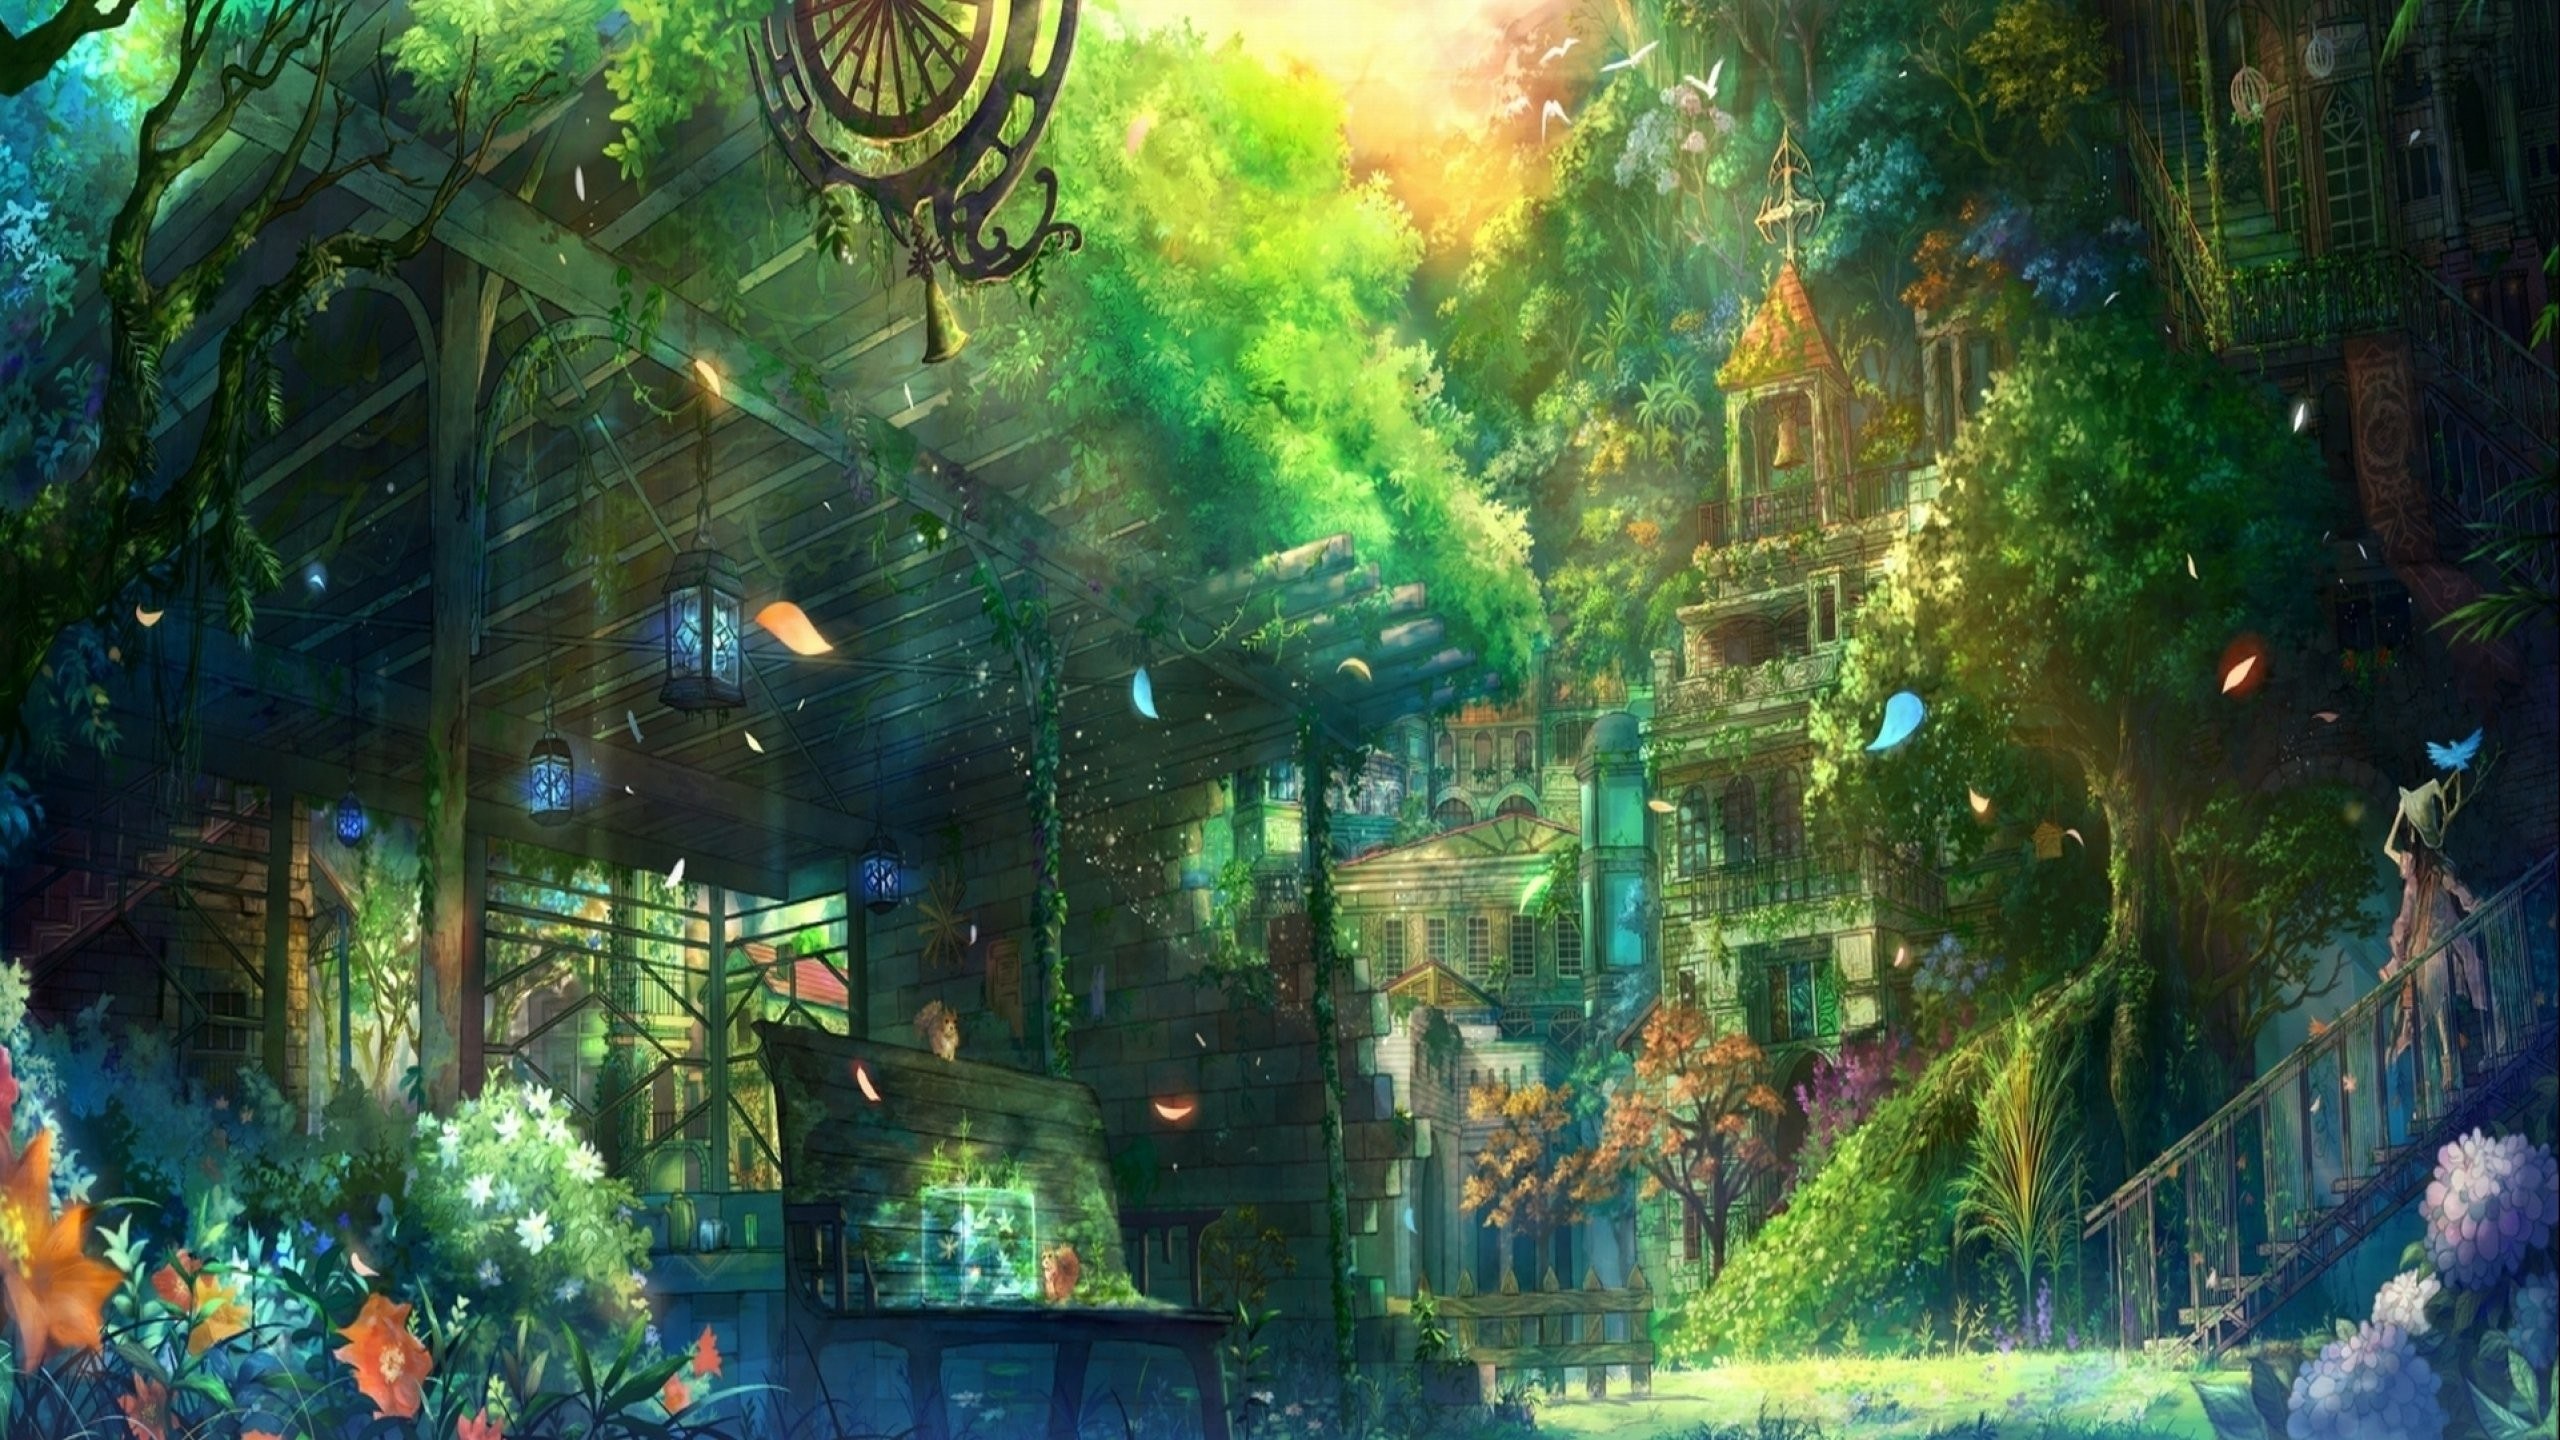 Res: 2560x1440, anime, Original, City, Cities, Art, Artwork, Fantasy, Detail Wallpapers HD  / Desktop and Mobile Backgrounds